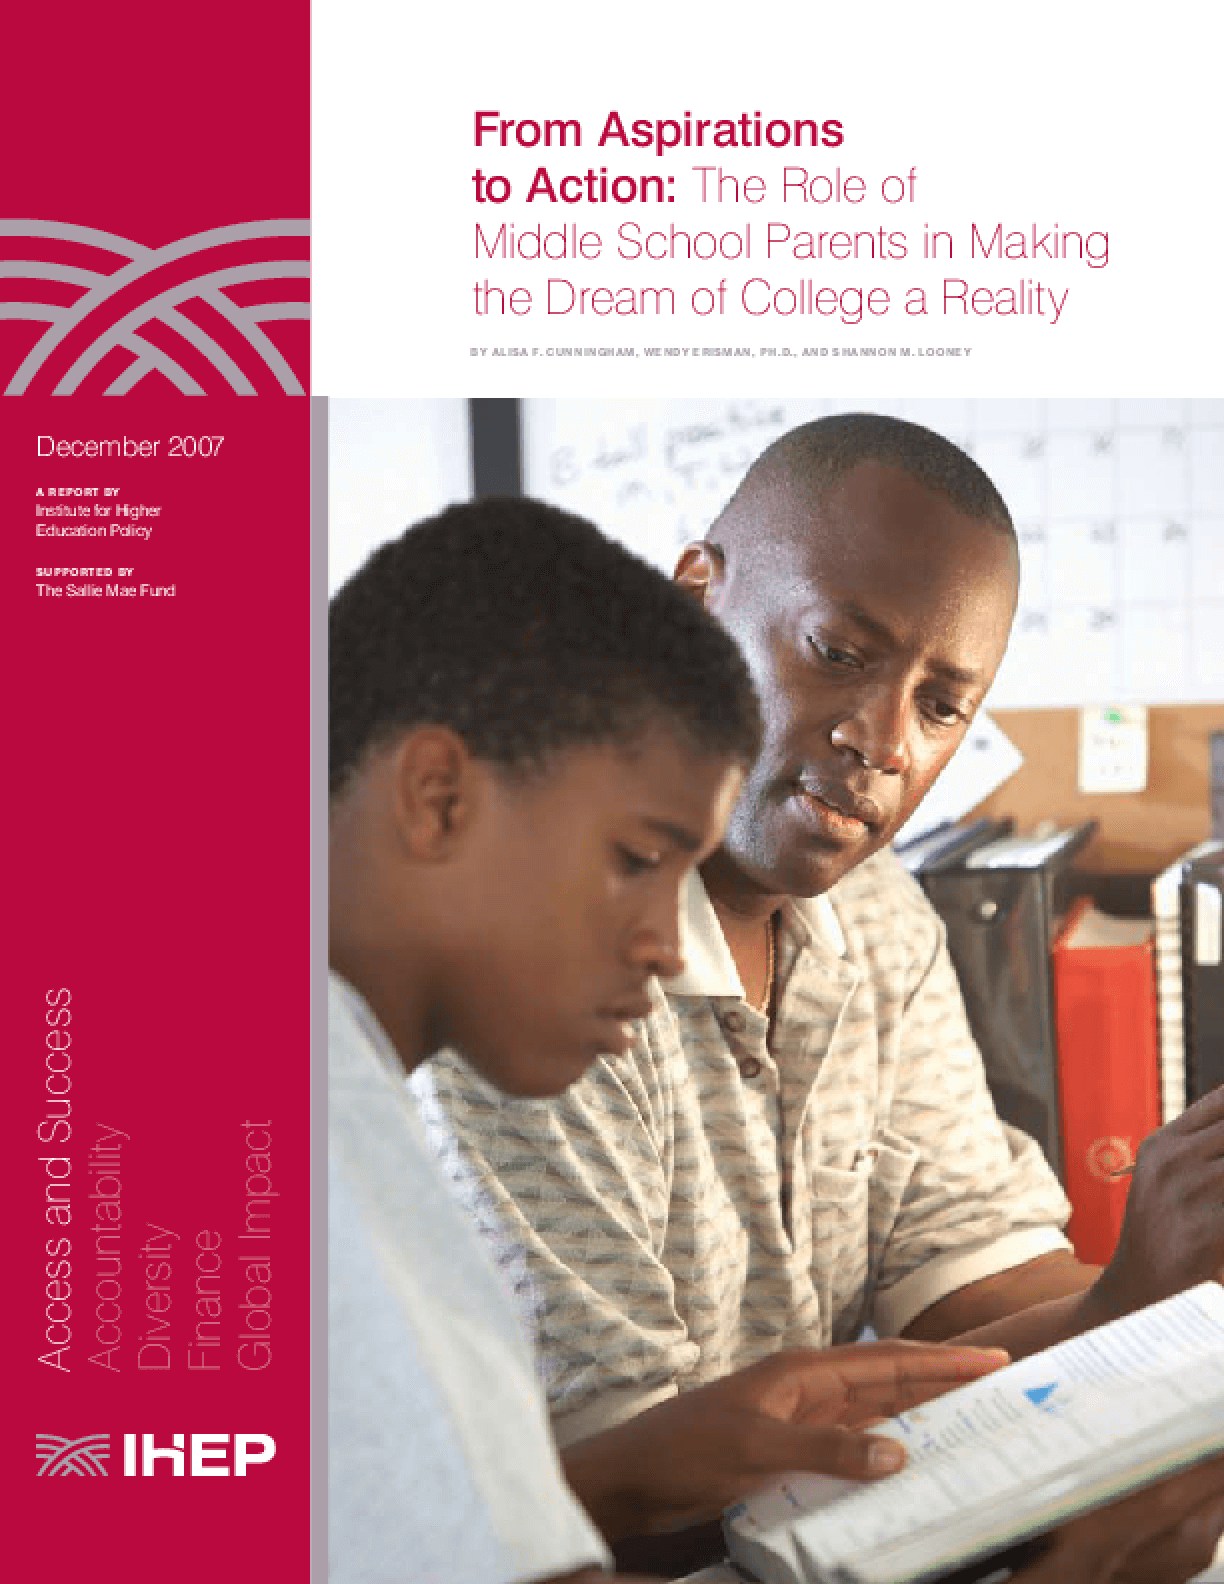 From Aspirations to Action: The Role of Middle School Parents in Making the Dream of College a Reality